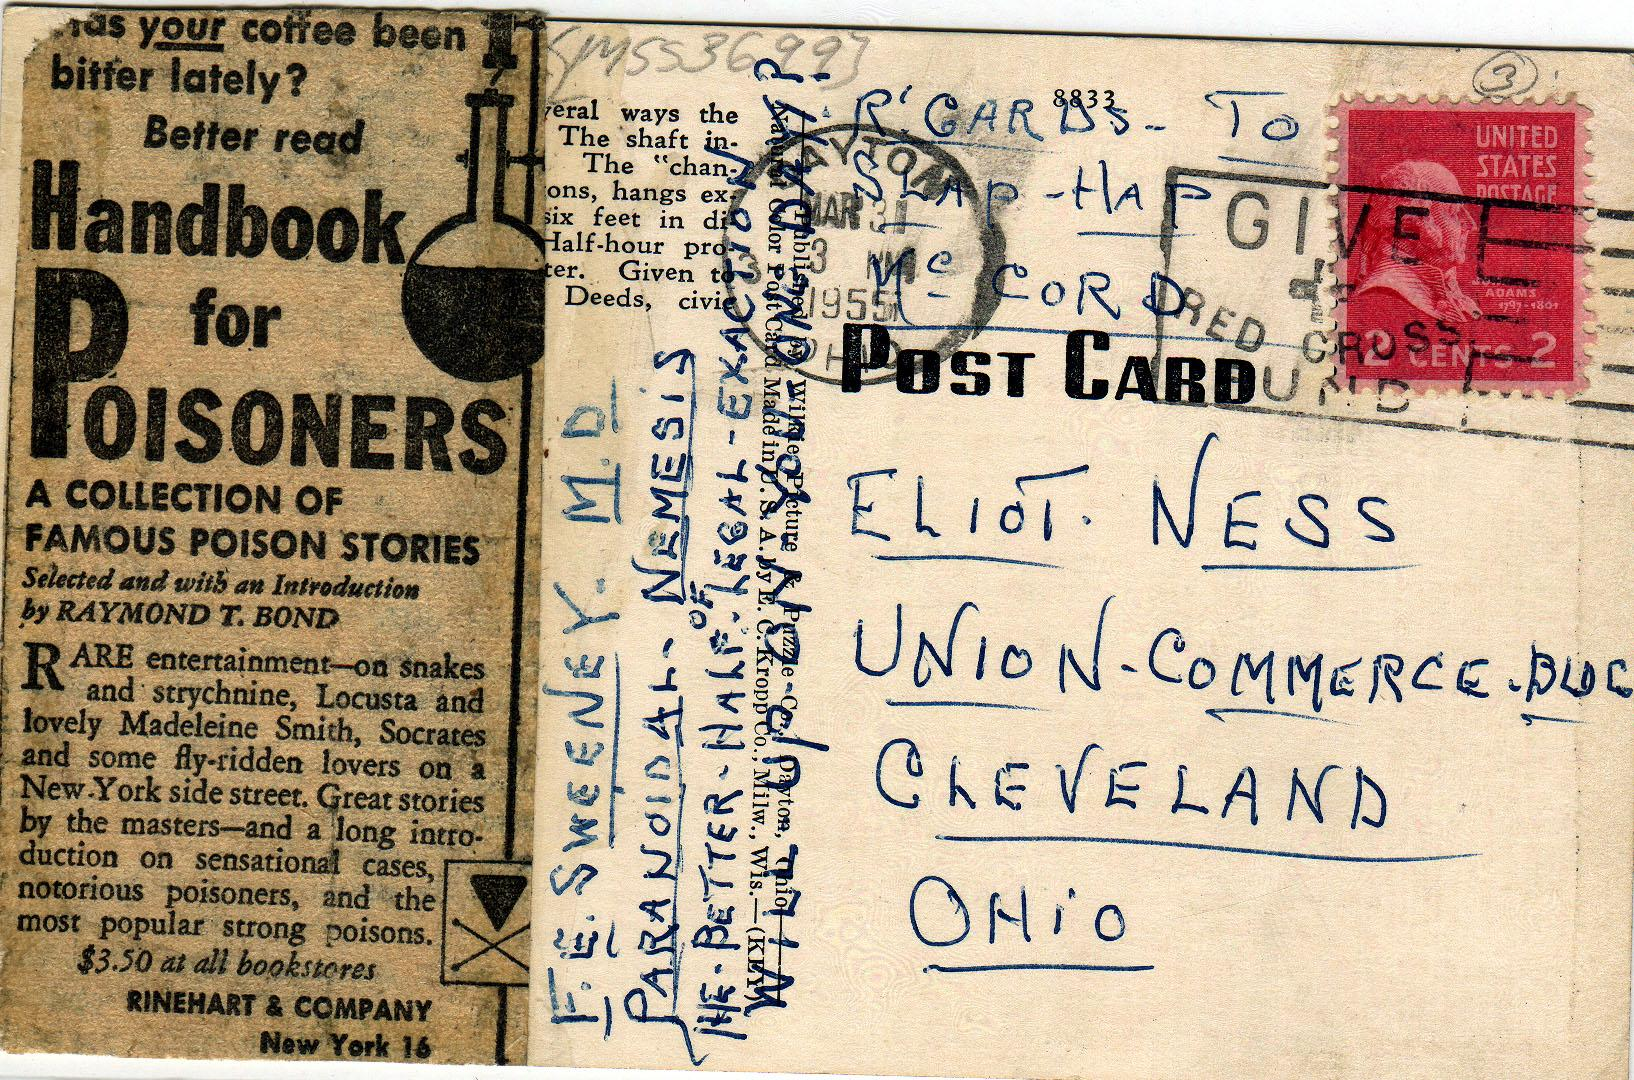 Postcard (4 of 5) sent to Eliot Ness in 1954 by an asylum inmate believed by some to have been the Torso Murderer. WRHS.